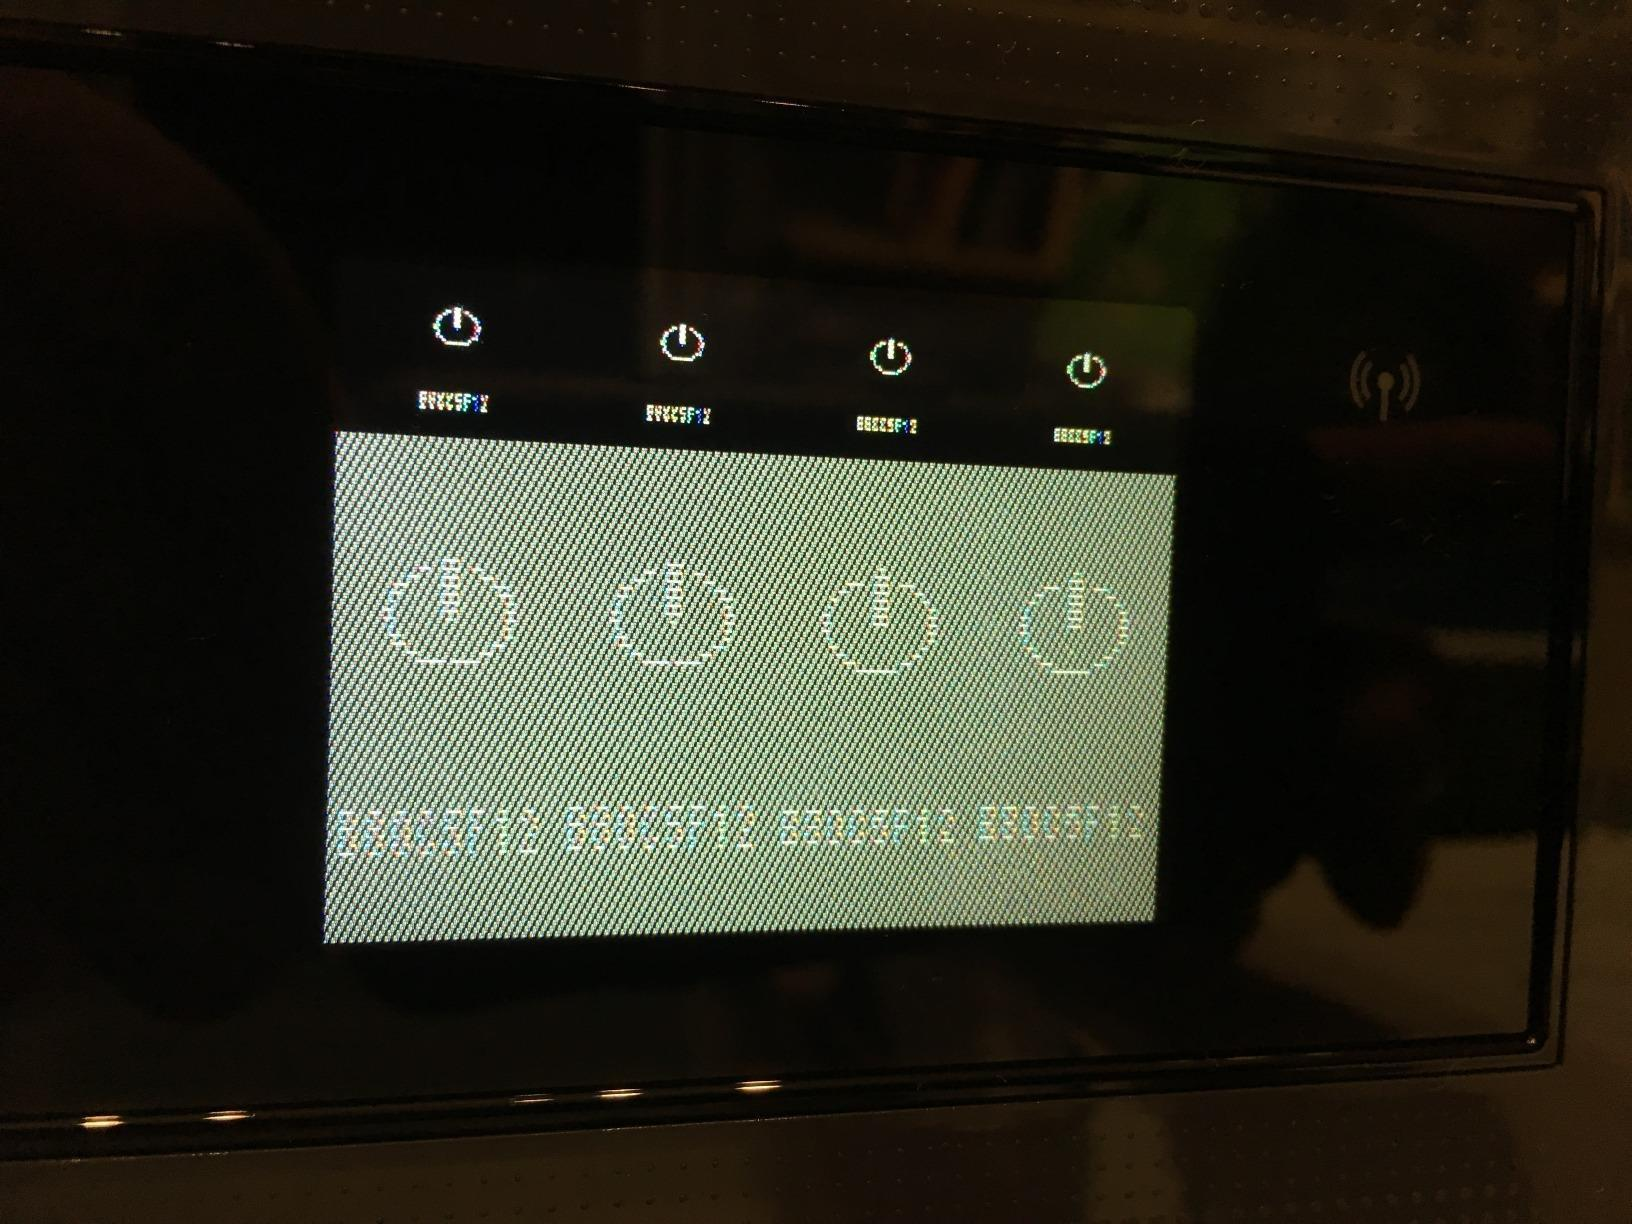 HP OfficeJet Pro 7740 Wide Format All-in-One Printer with